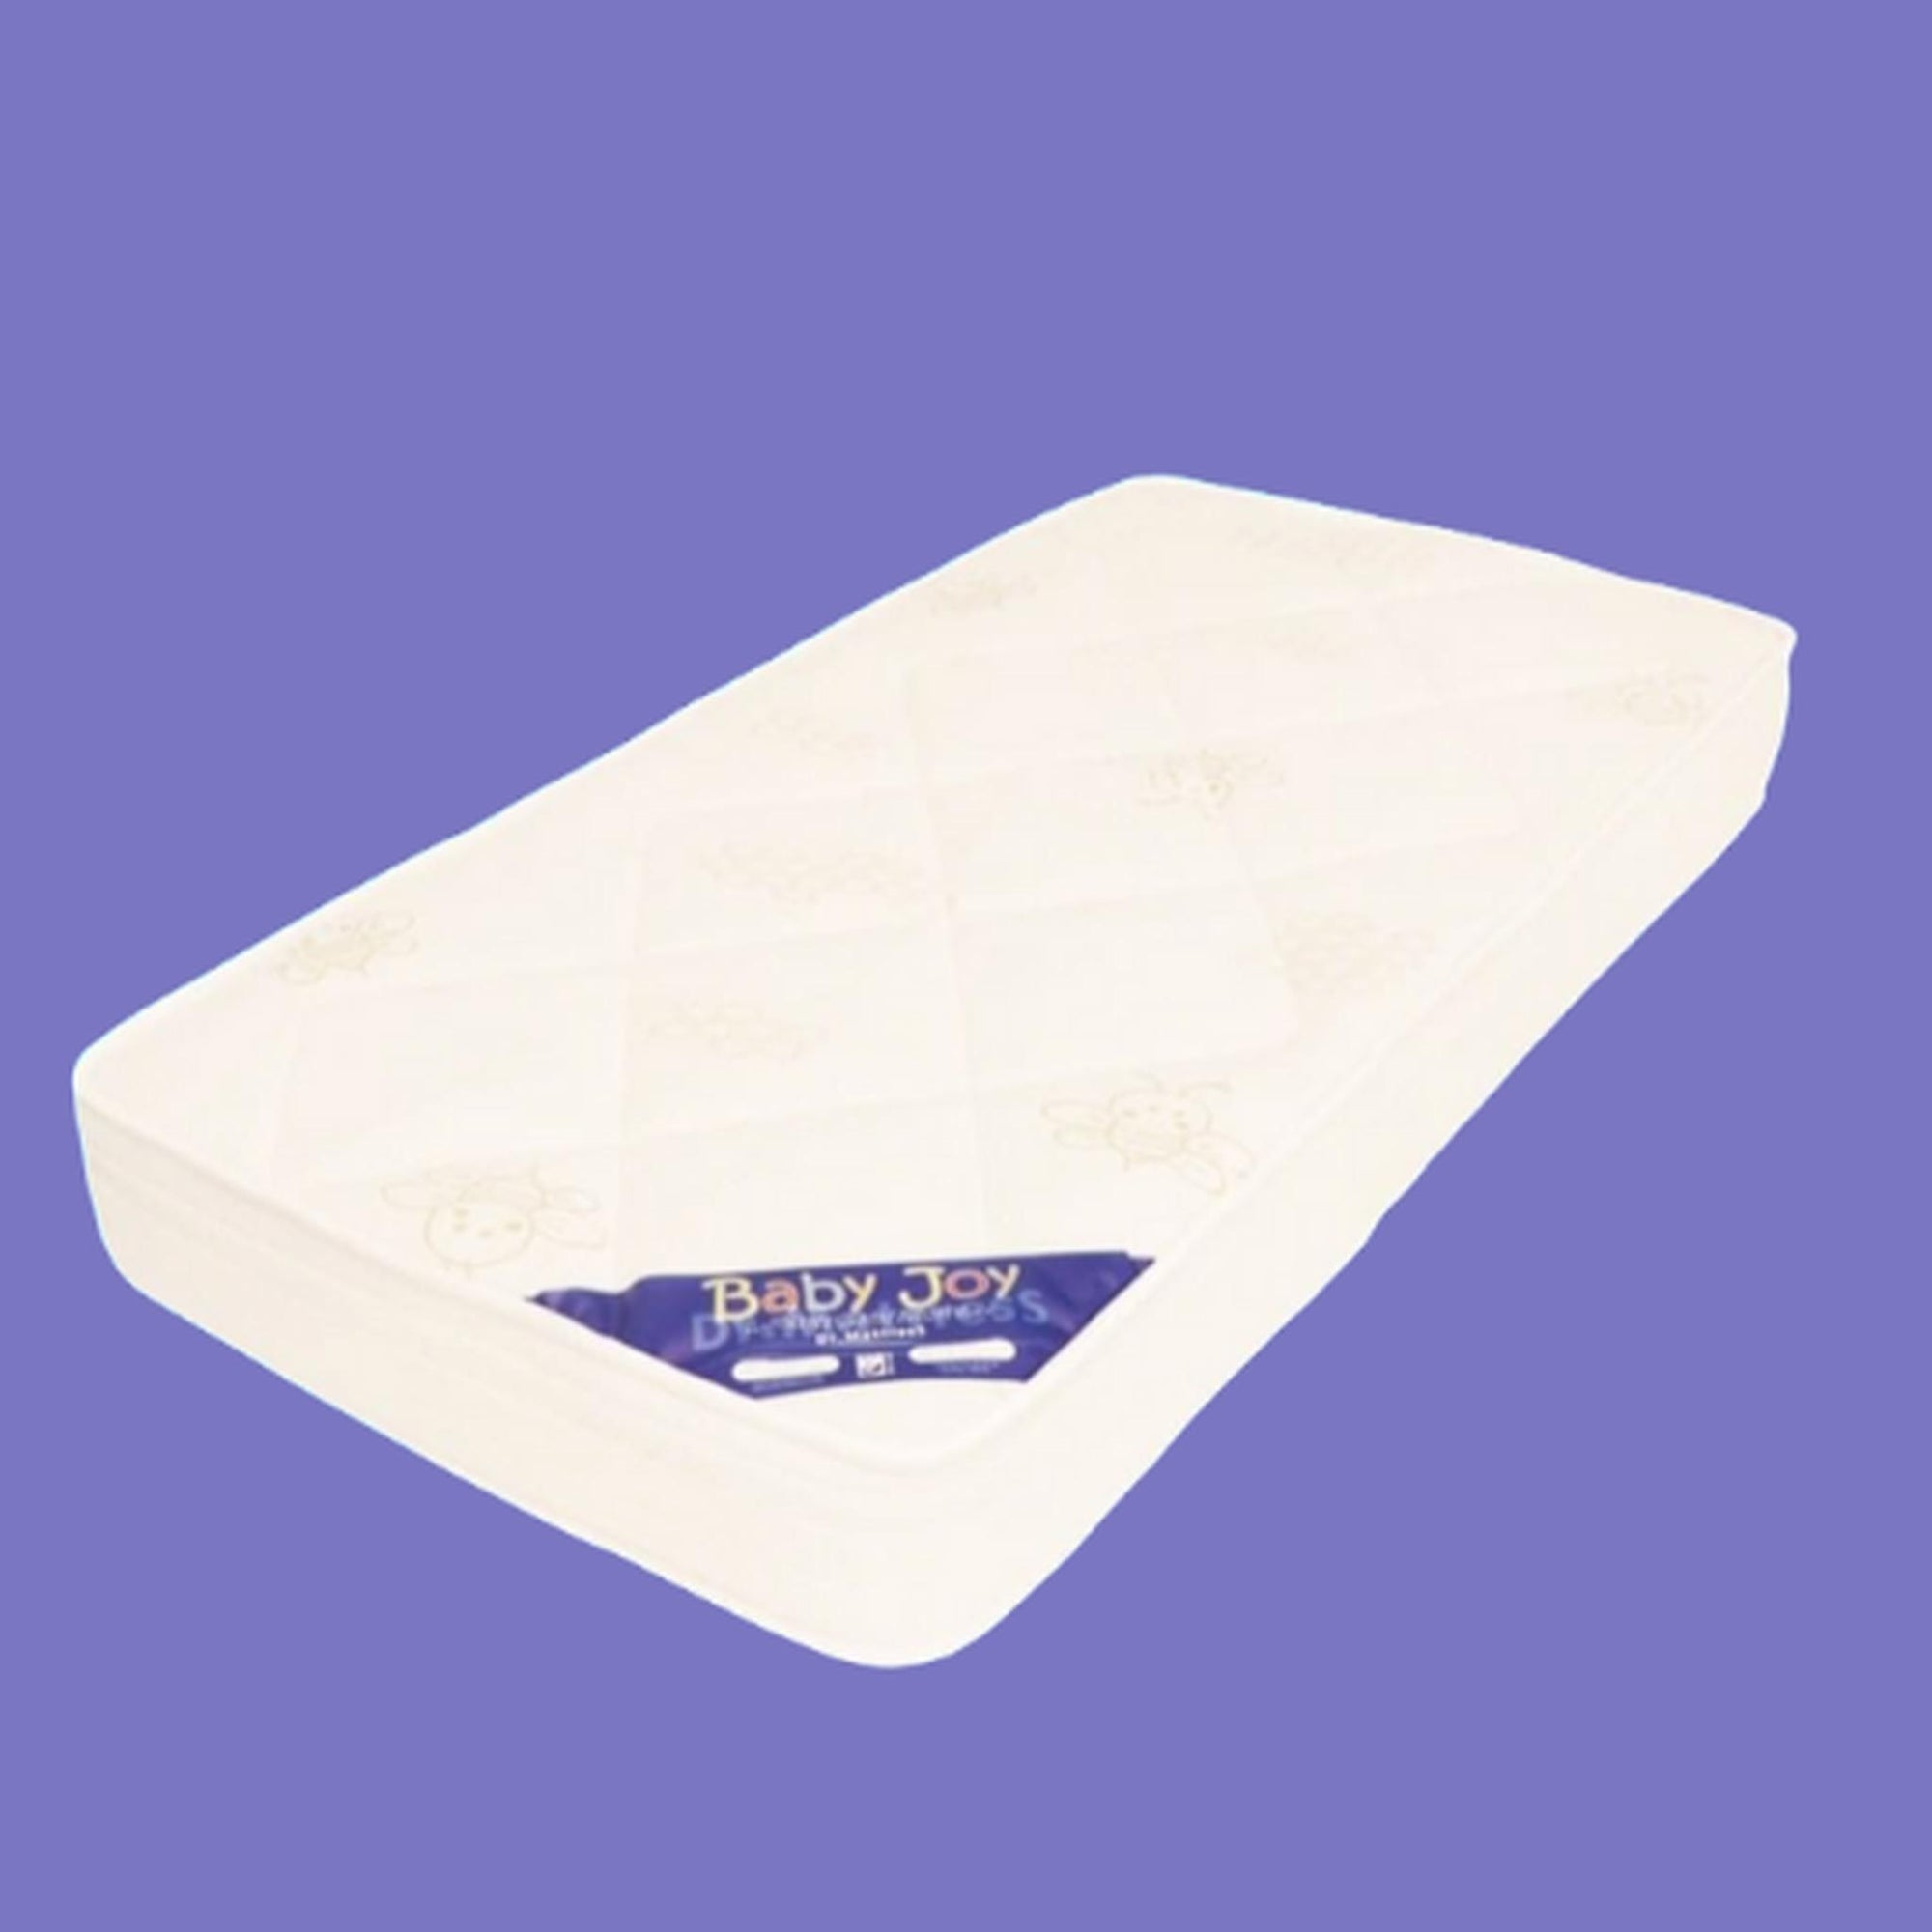 Dr. Mattress Baby Joy 4in-Mattresses-Mother and Baby Shop Kenya's #1 Online Baby Shop